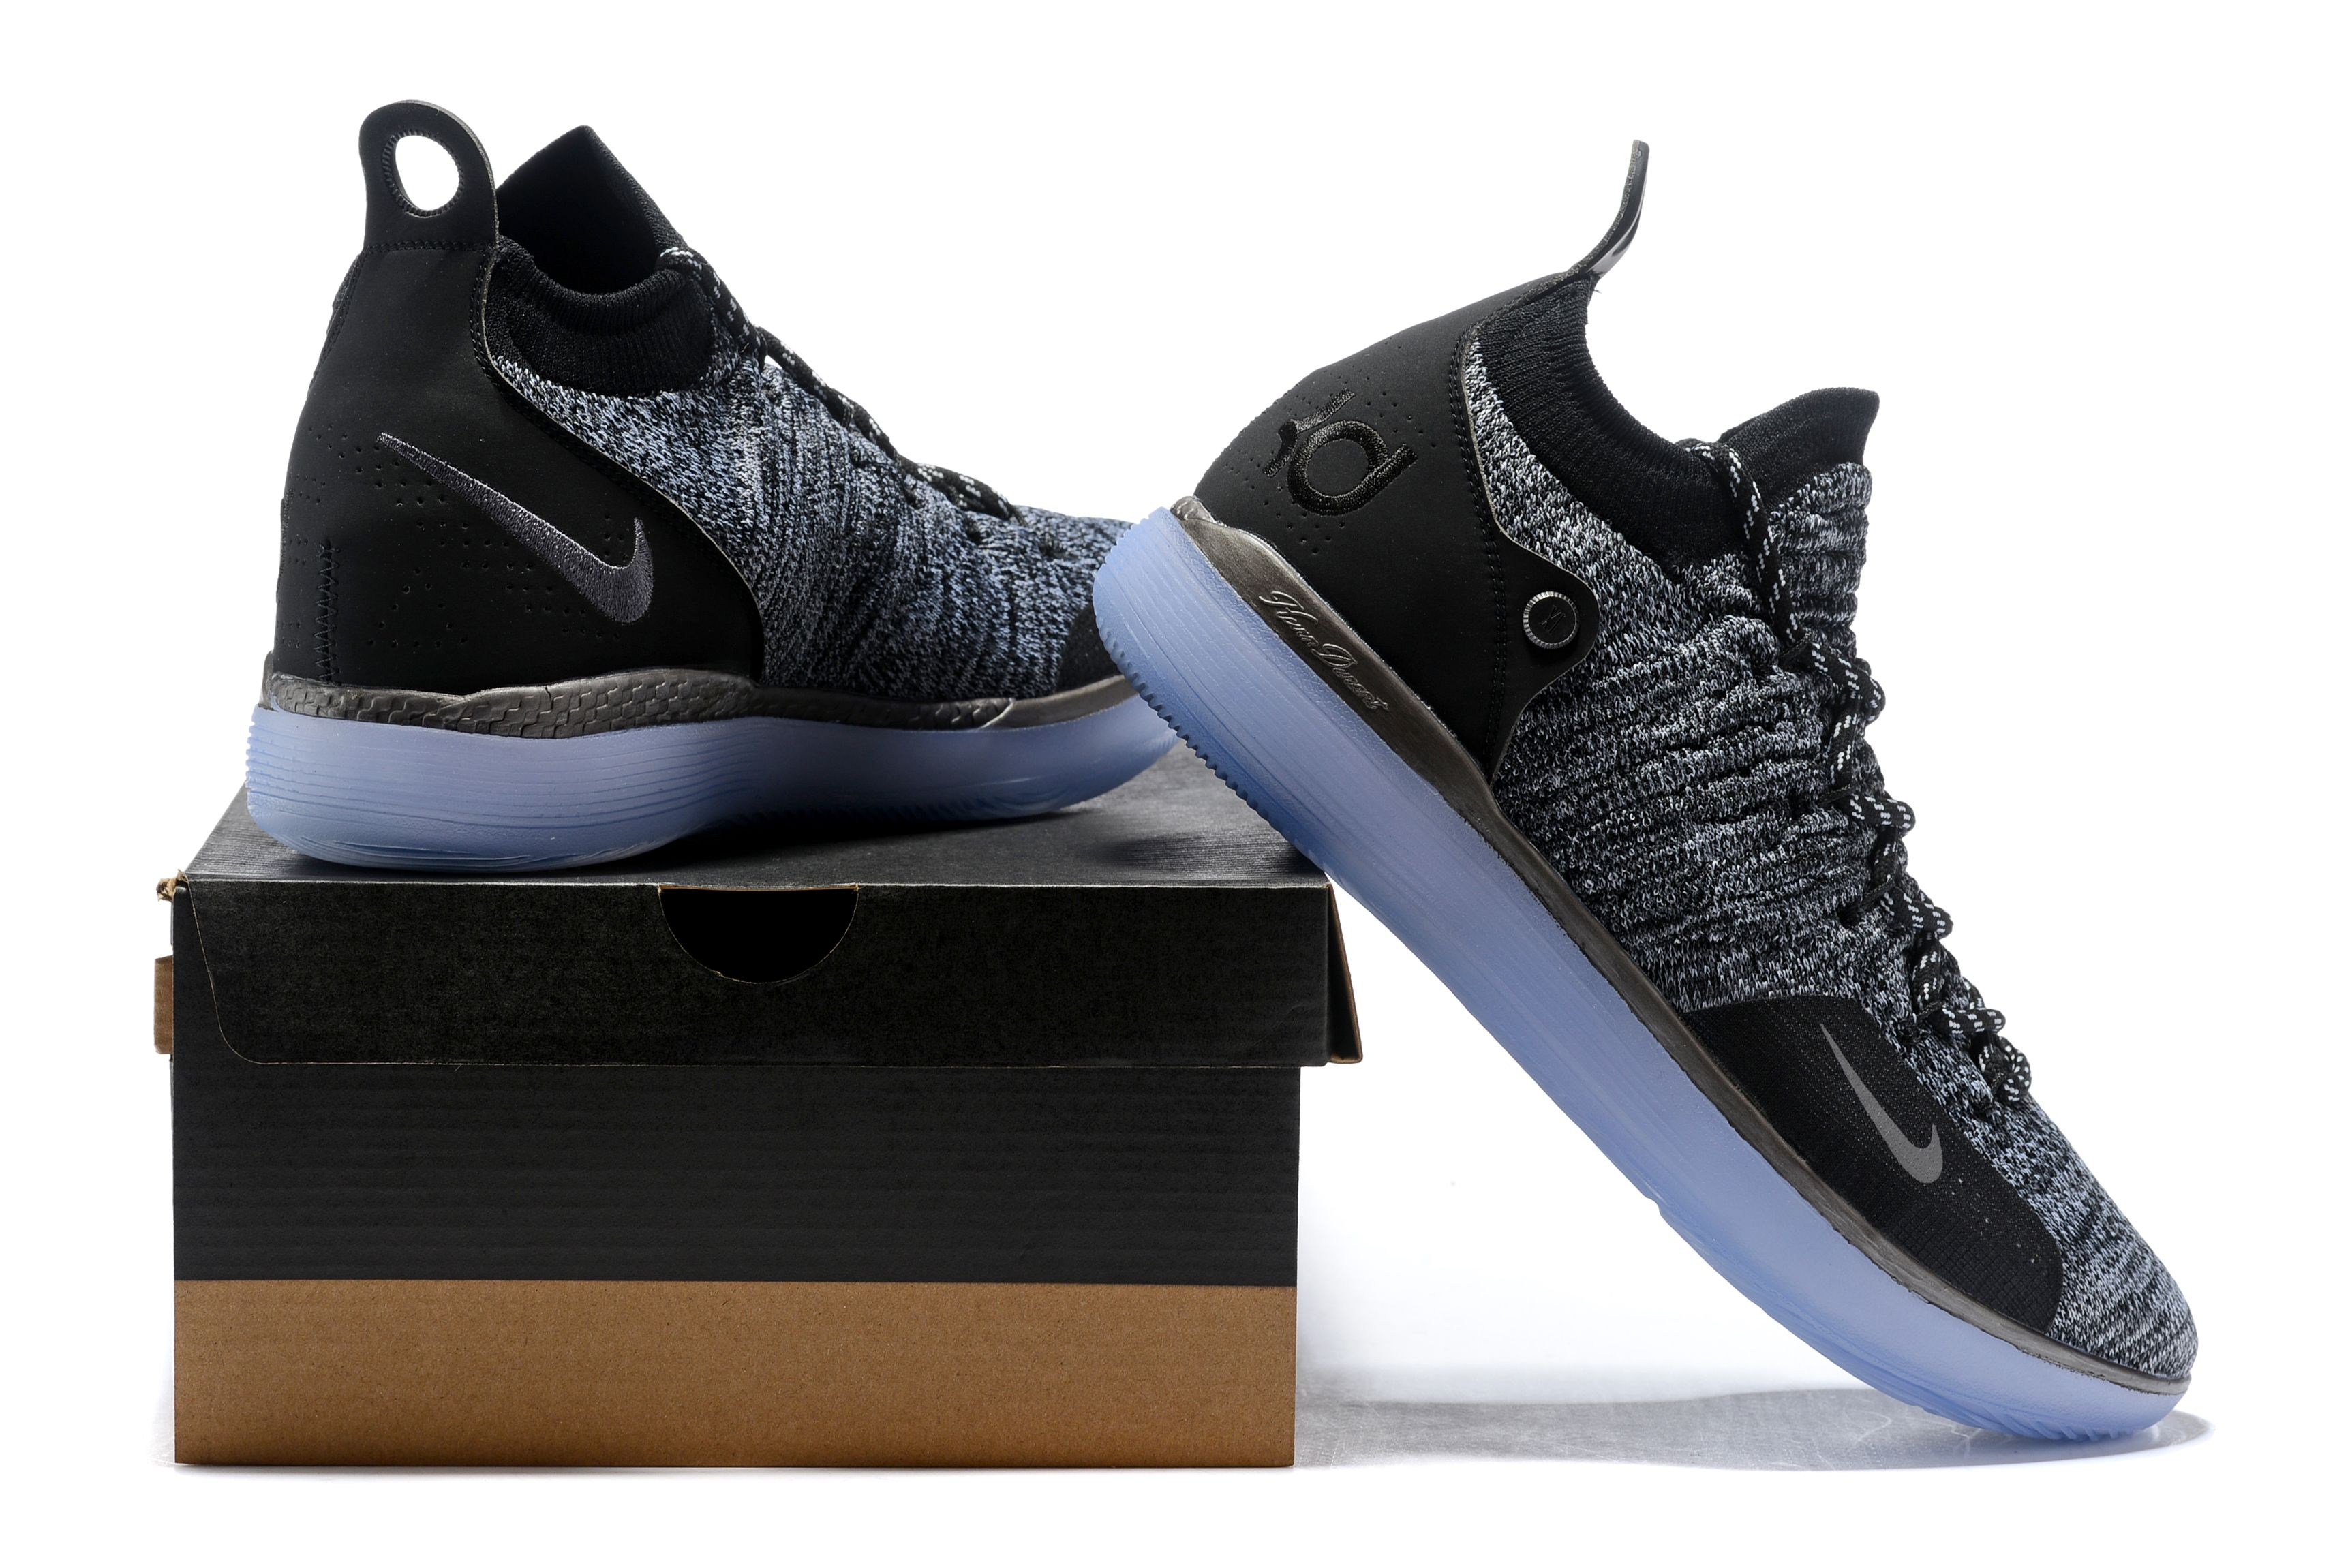 78d393863751 Nike Zoom KD 11 EP Black Grey Men s Basketball Shoes Free Shipping ...